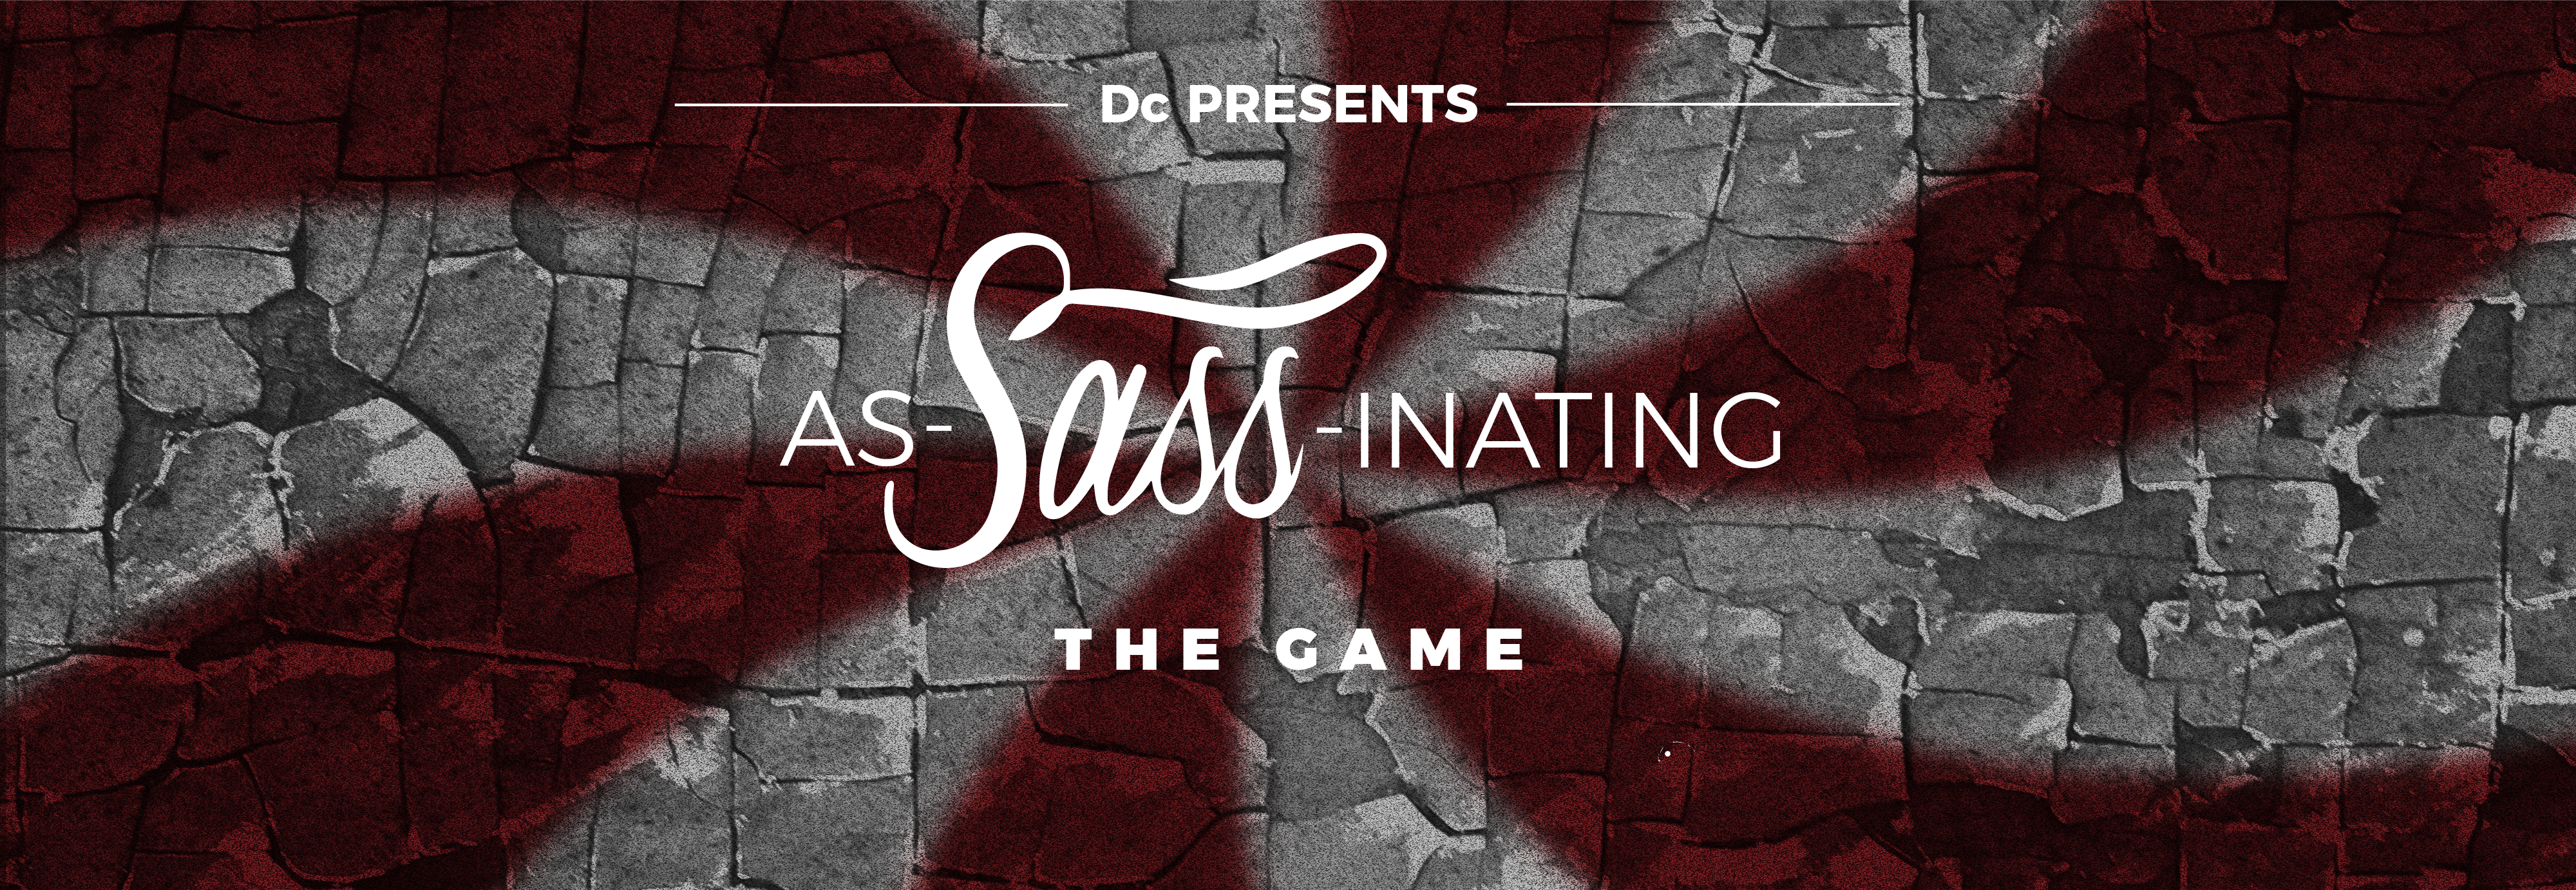 DC PRESENTS –  As-SASS-inating the Game